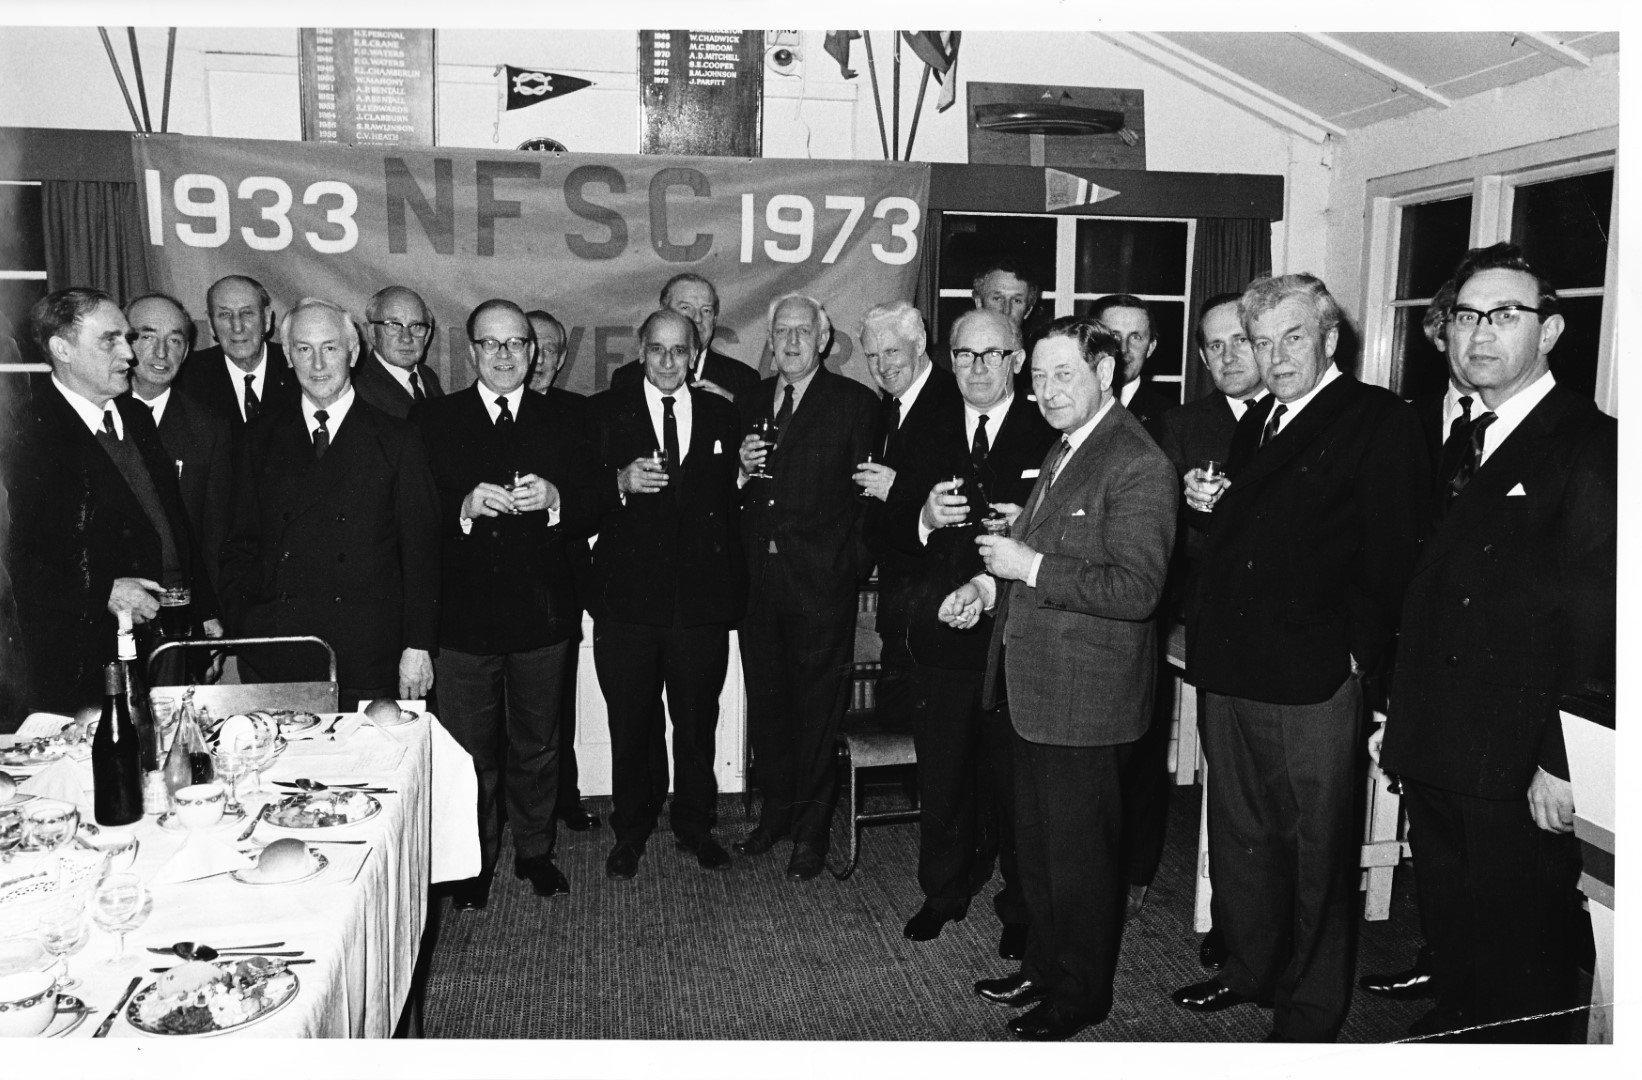 NFSC 40th Anniversary Celebration - March 1974